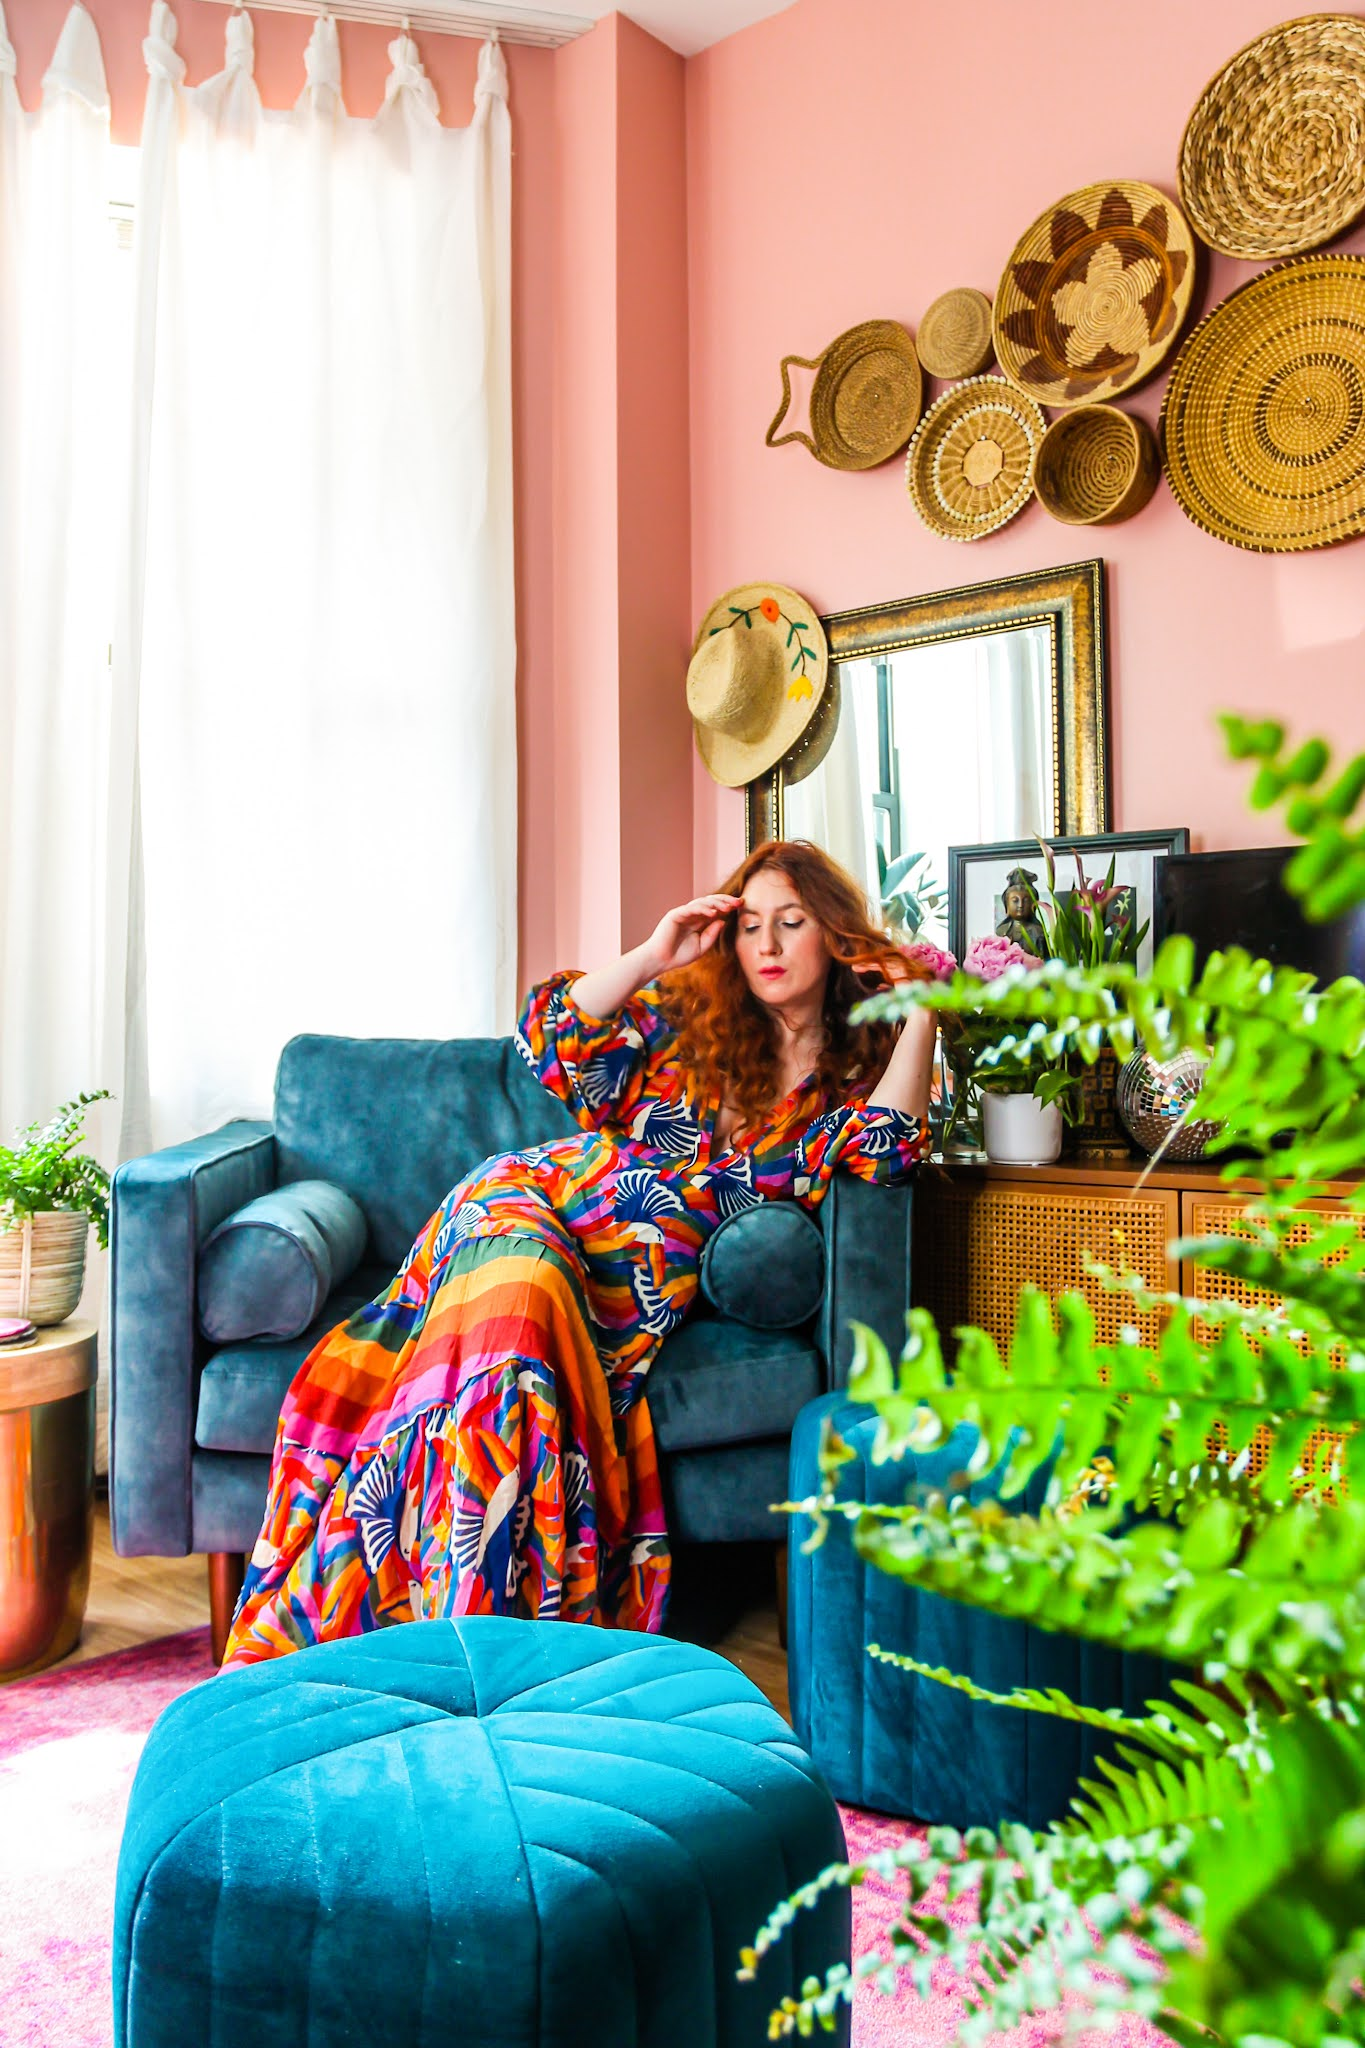 blue velvet chair // colorful homes // pink living room // farm rio maxi dresses // red head bloggers // home decor // maximalist // NYC apartments // colorful maximalist // small space homes // living room decor Ideas // colorful living room // pink and blue living room // basket wall